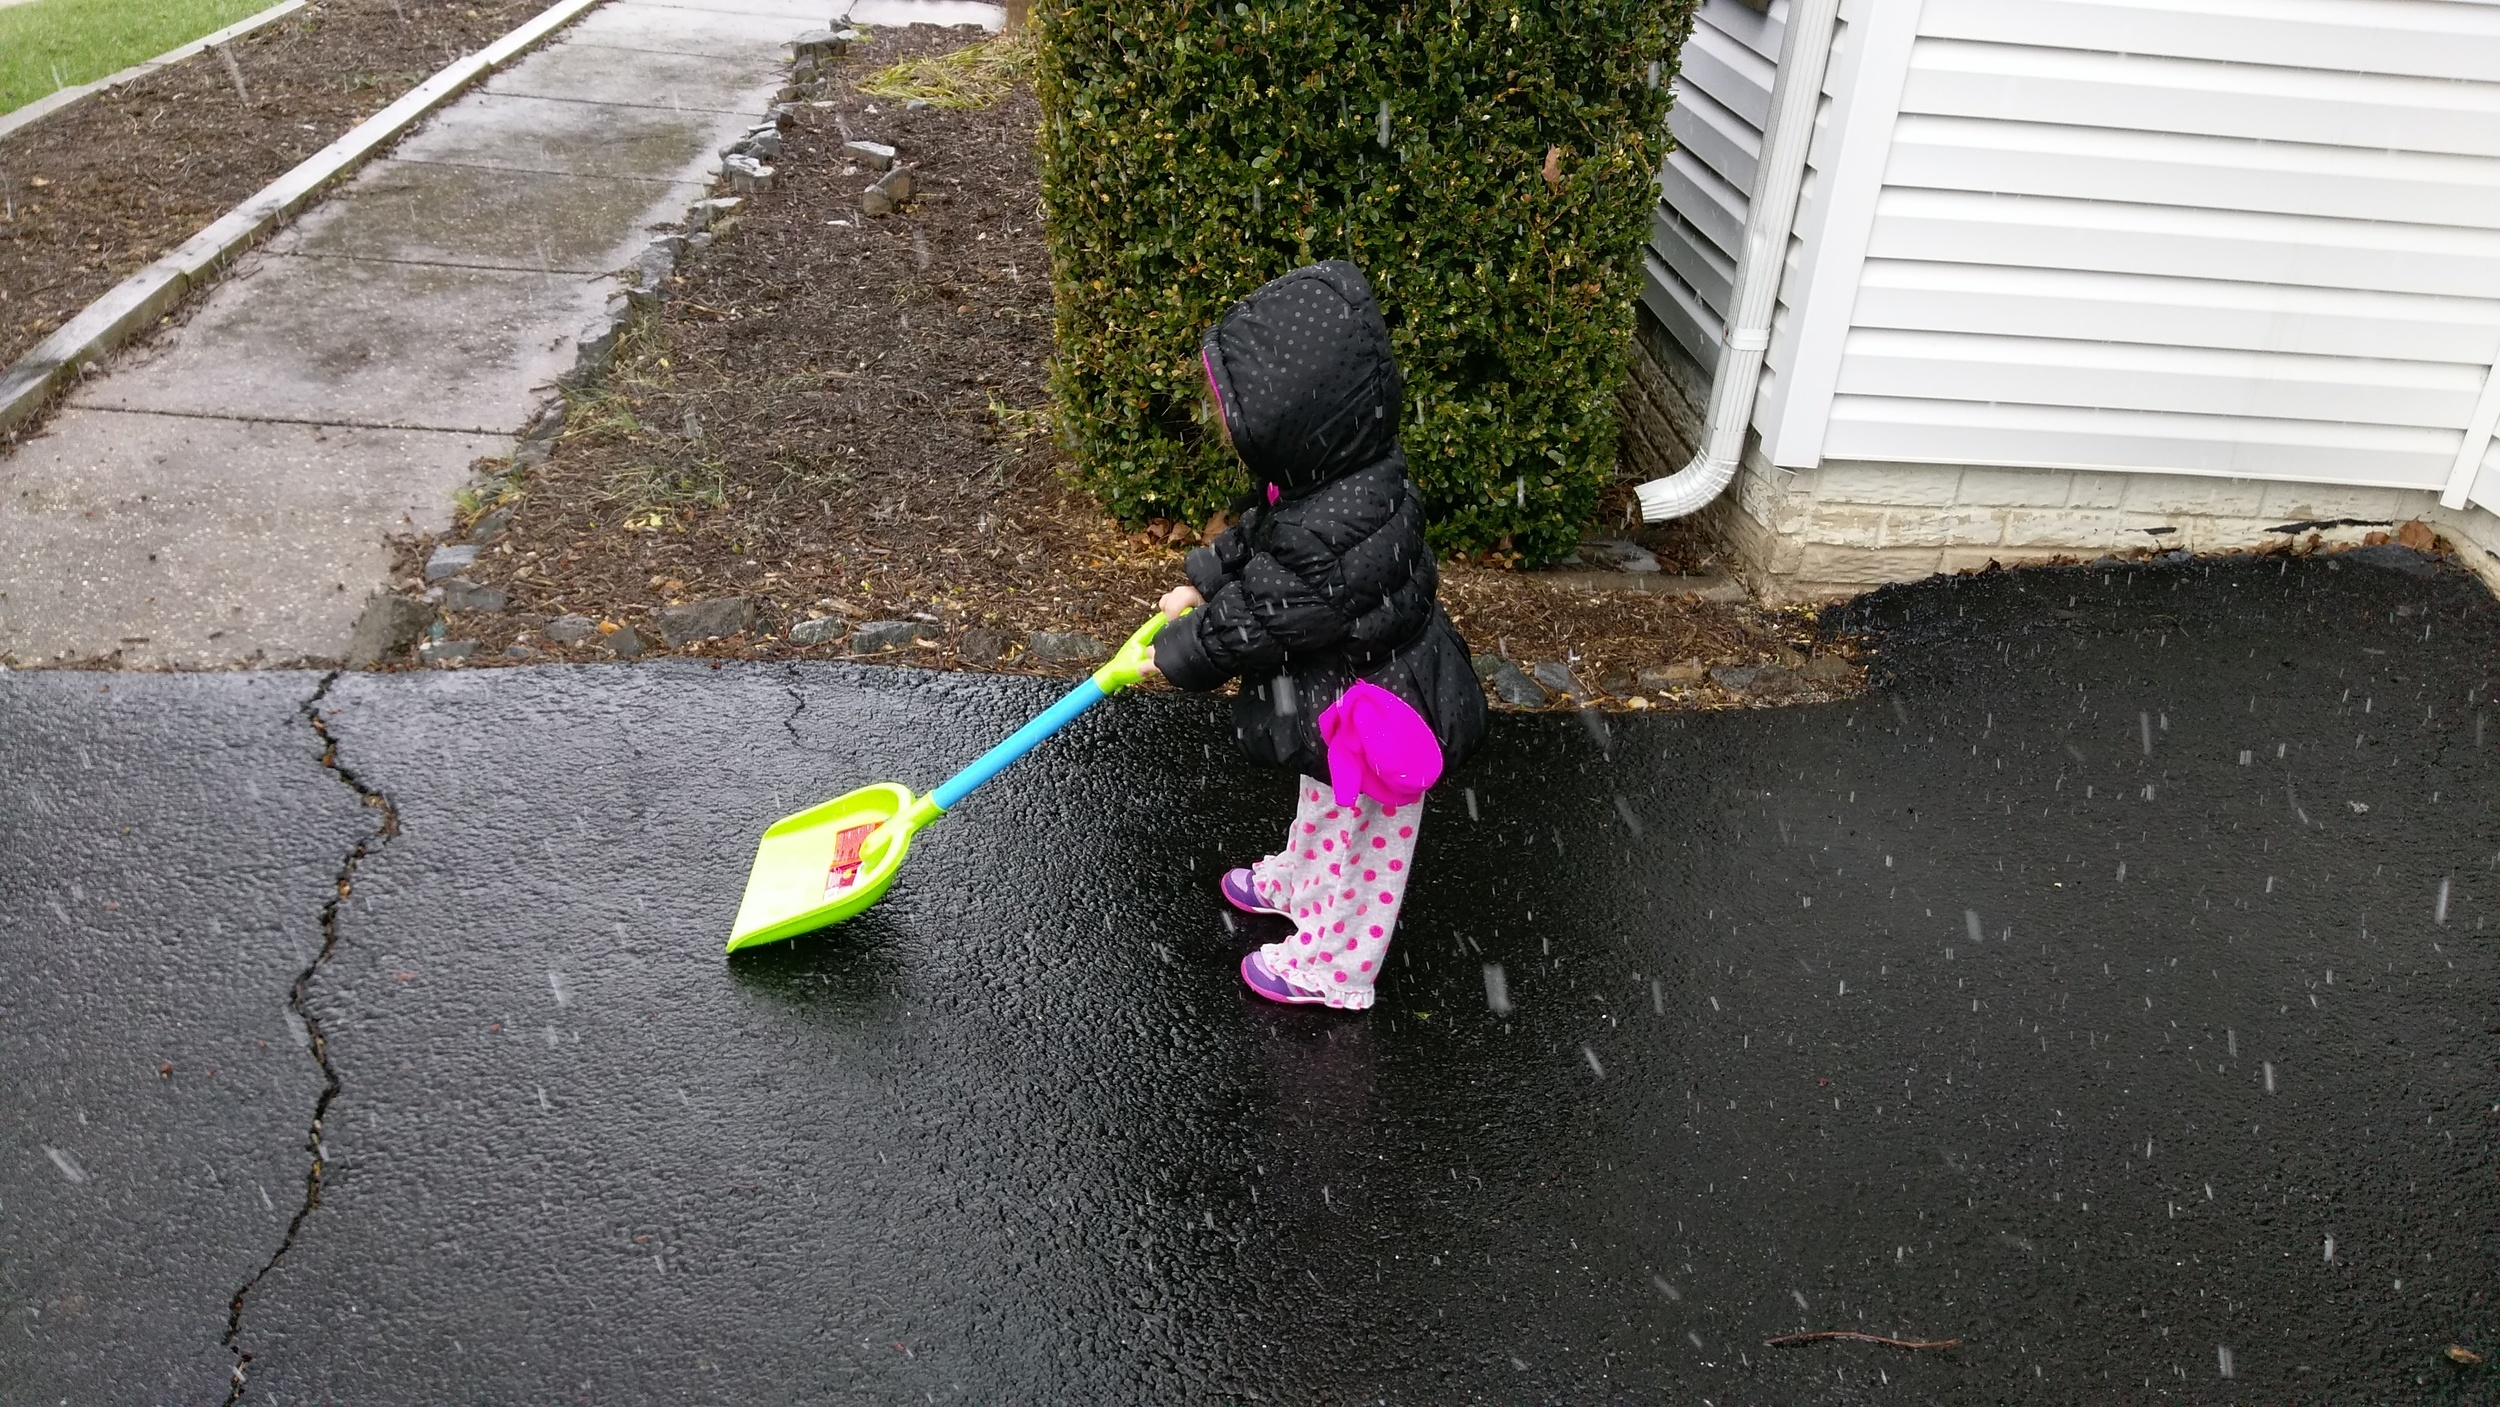 Cece getting an early start of shoveling